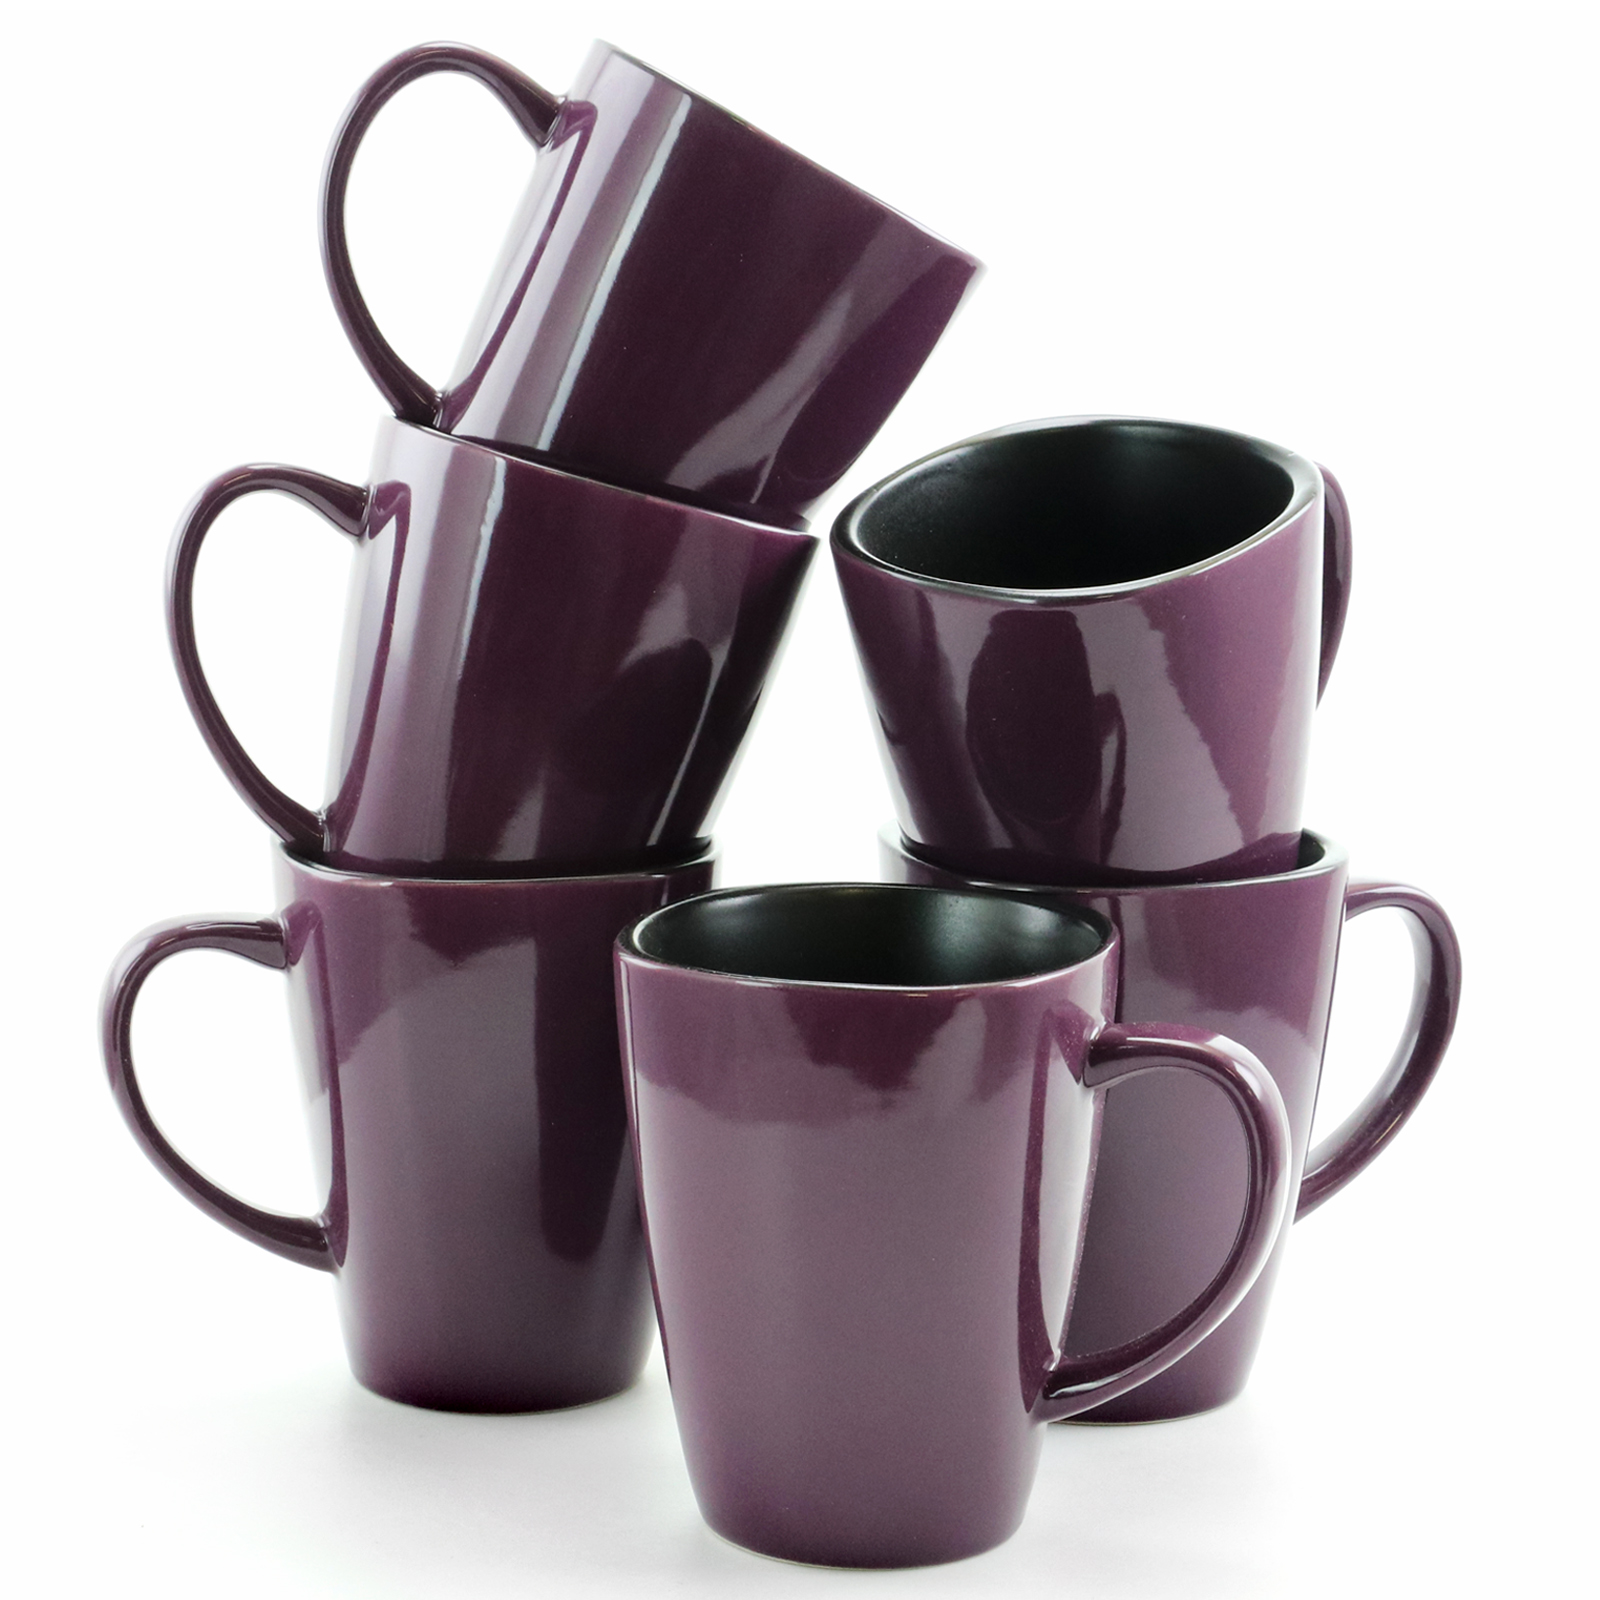 EL-MULBERRY-6PC-CUPS